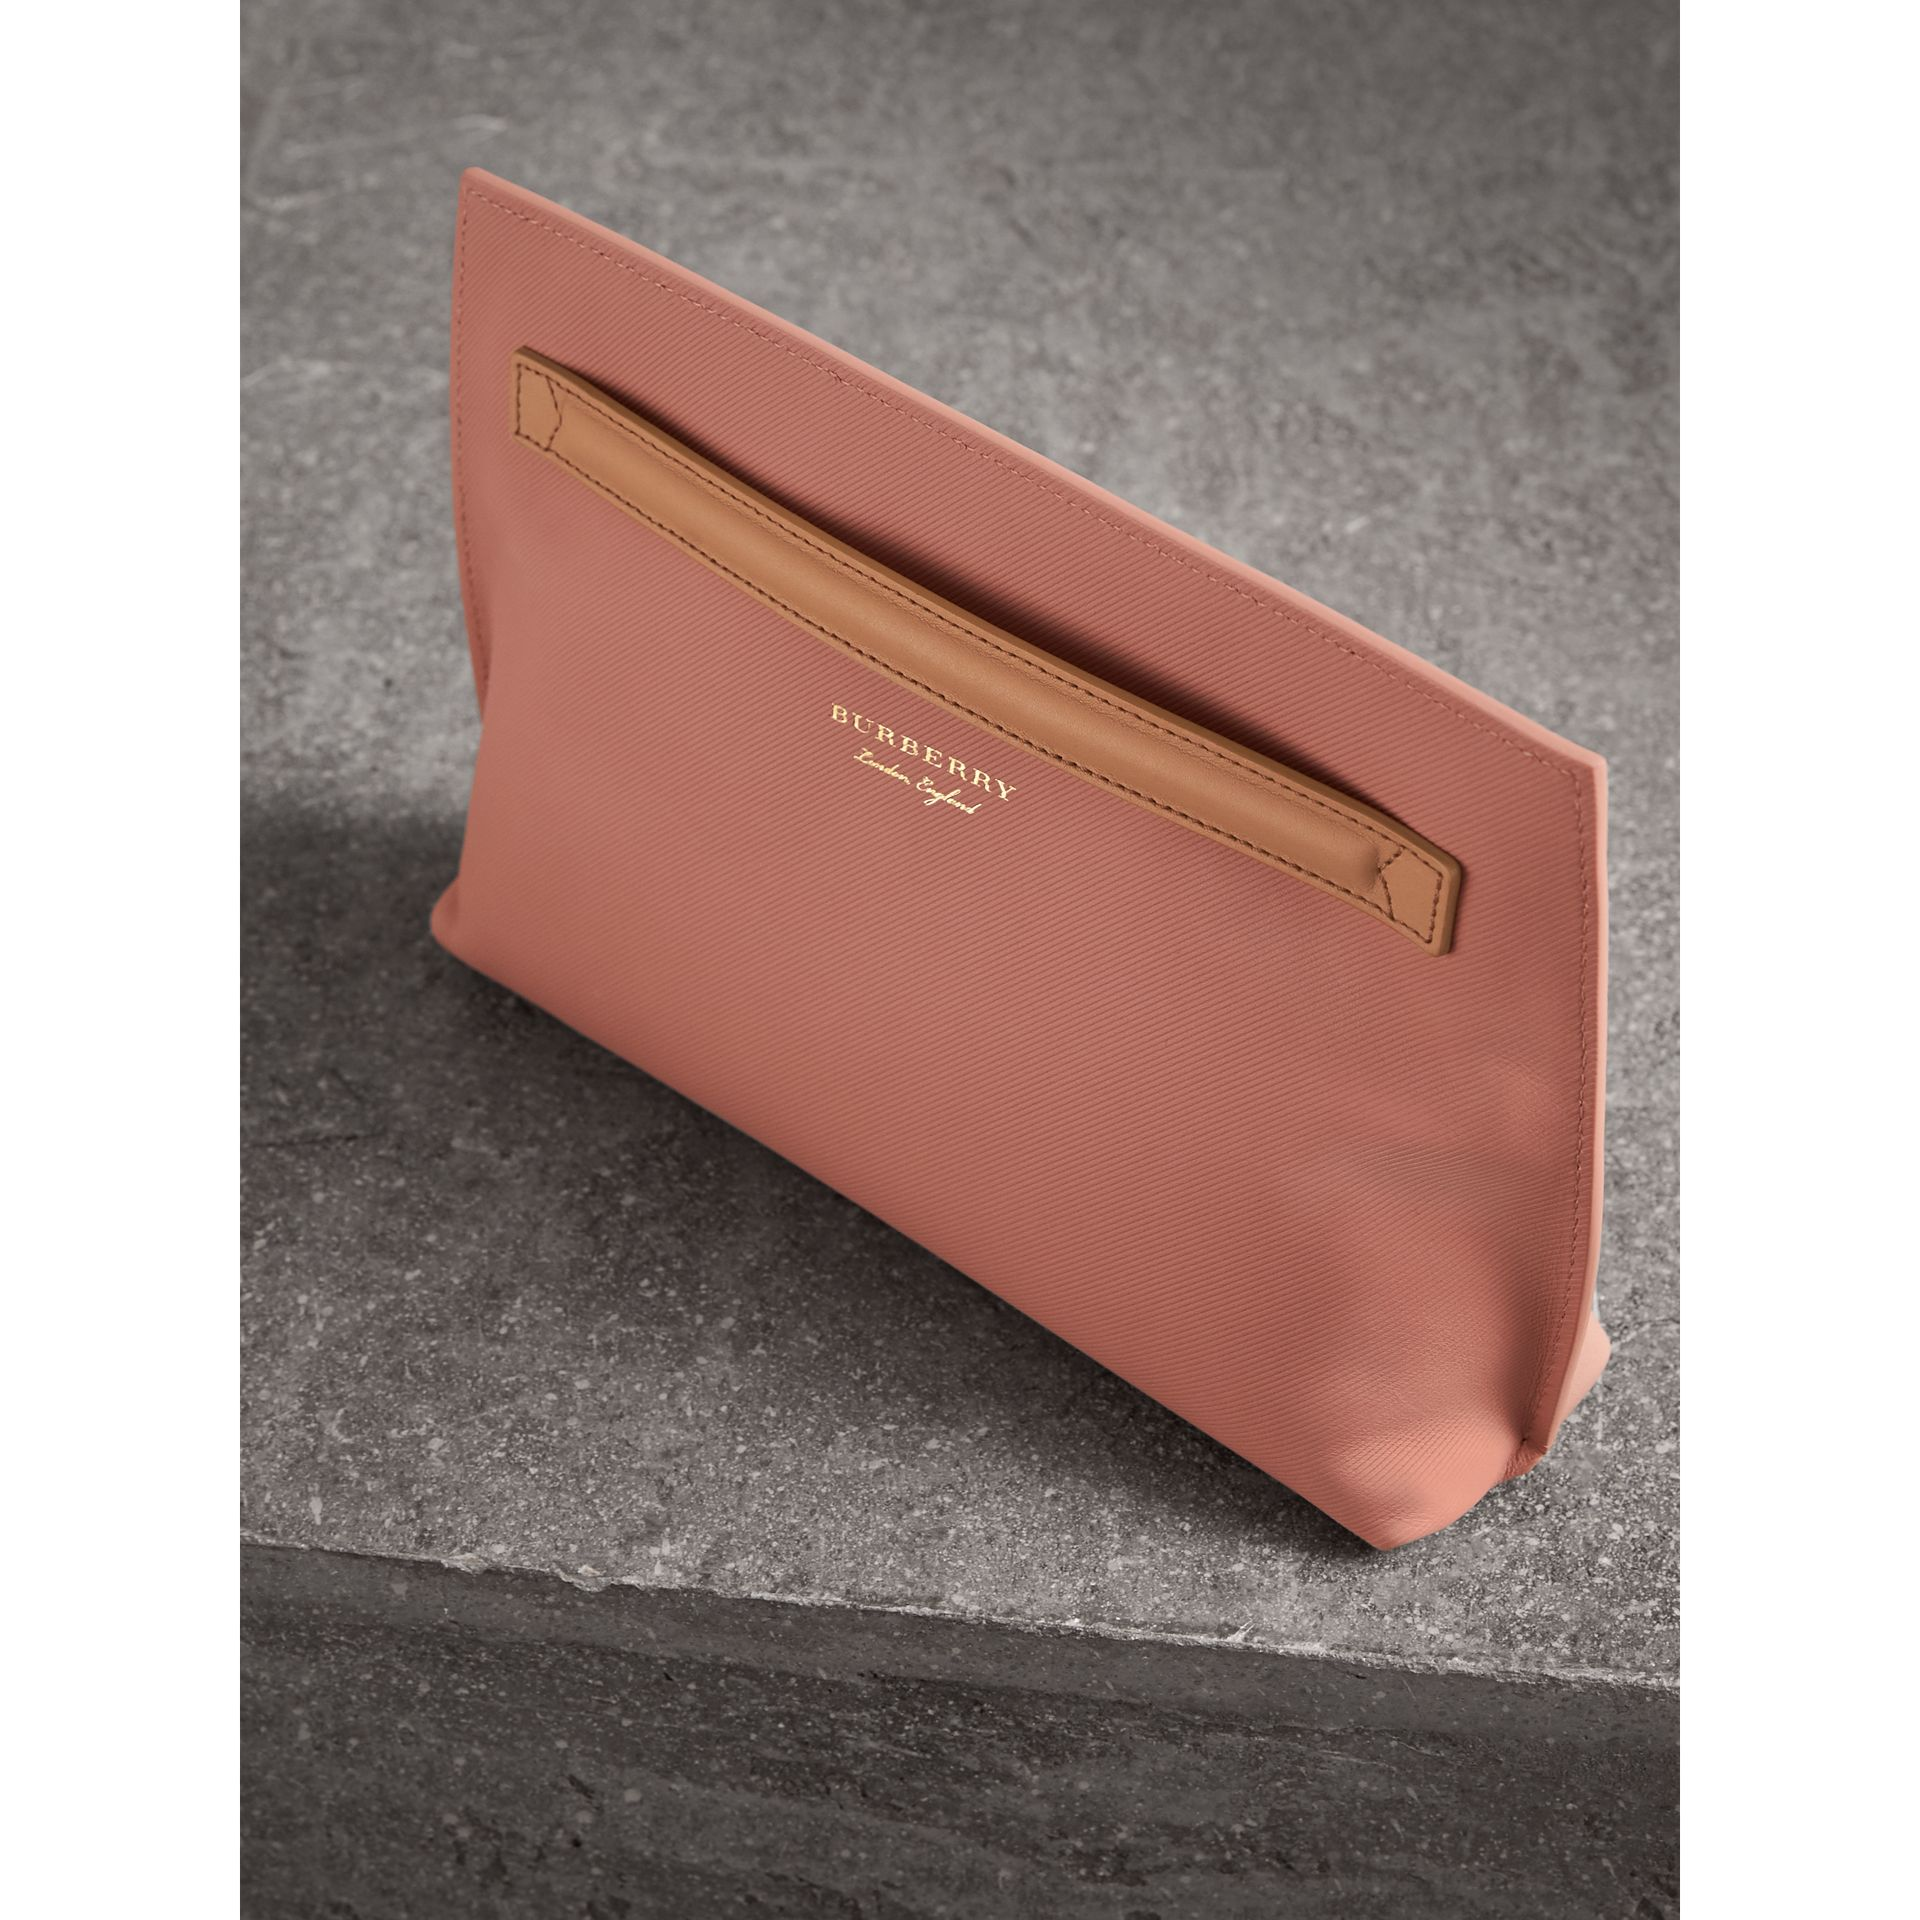 Two-tone Trench Leather Wristlet Pouch in Ash Rose/pale Clementine - Women | Burberry United Kingdom - gallery image 3